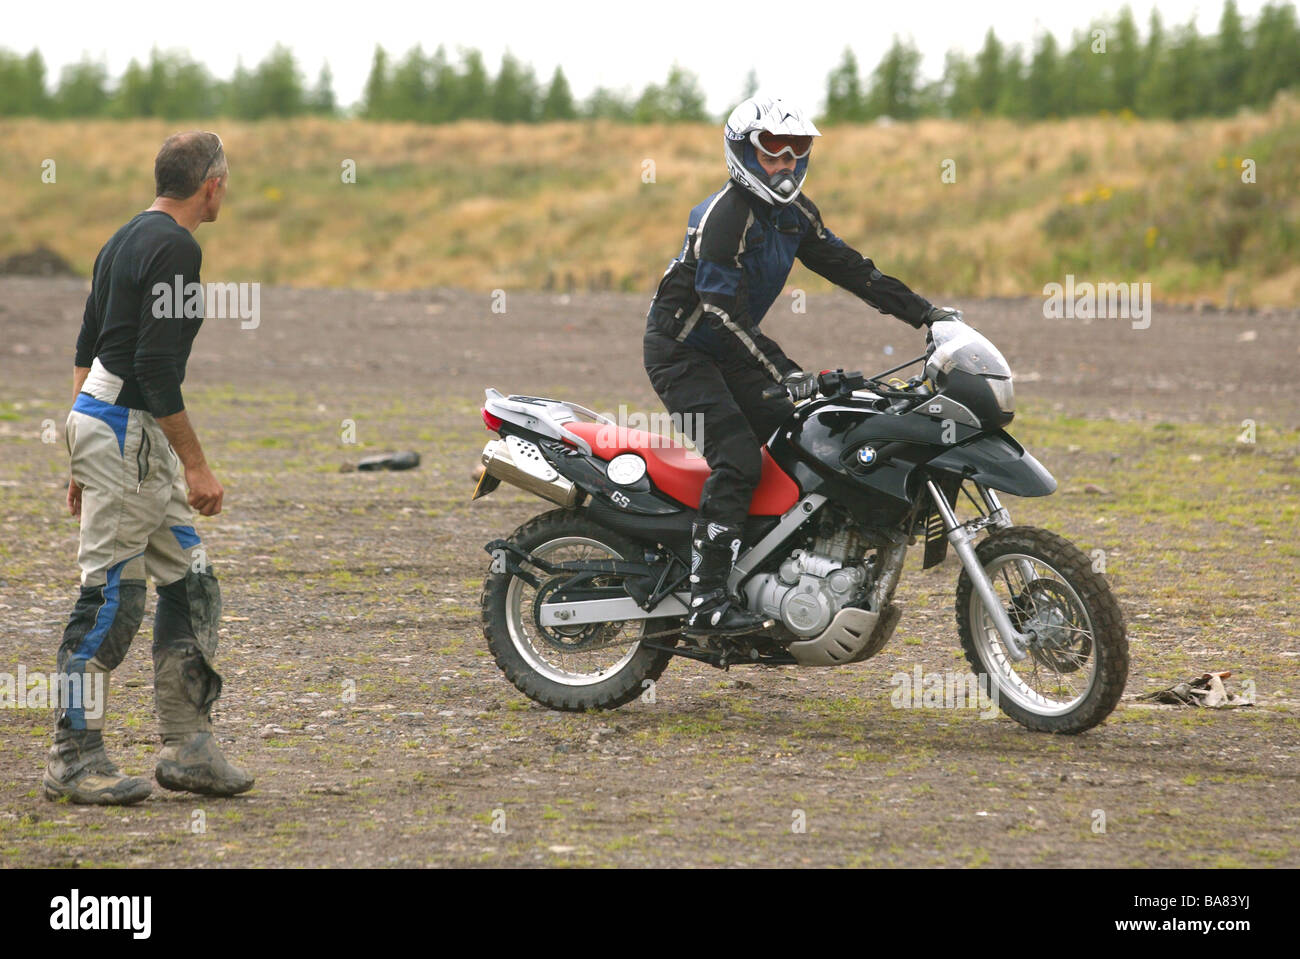 Bmw Off Road Motorcycle Training Wales Stock Photo Royalty Free Image 23535670 Alamy